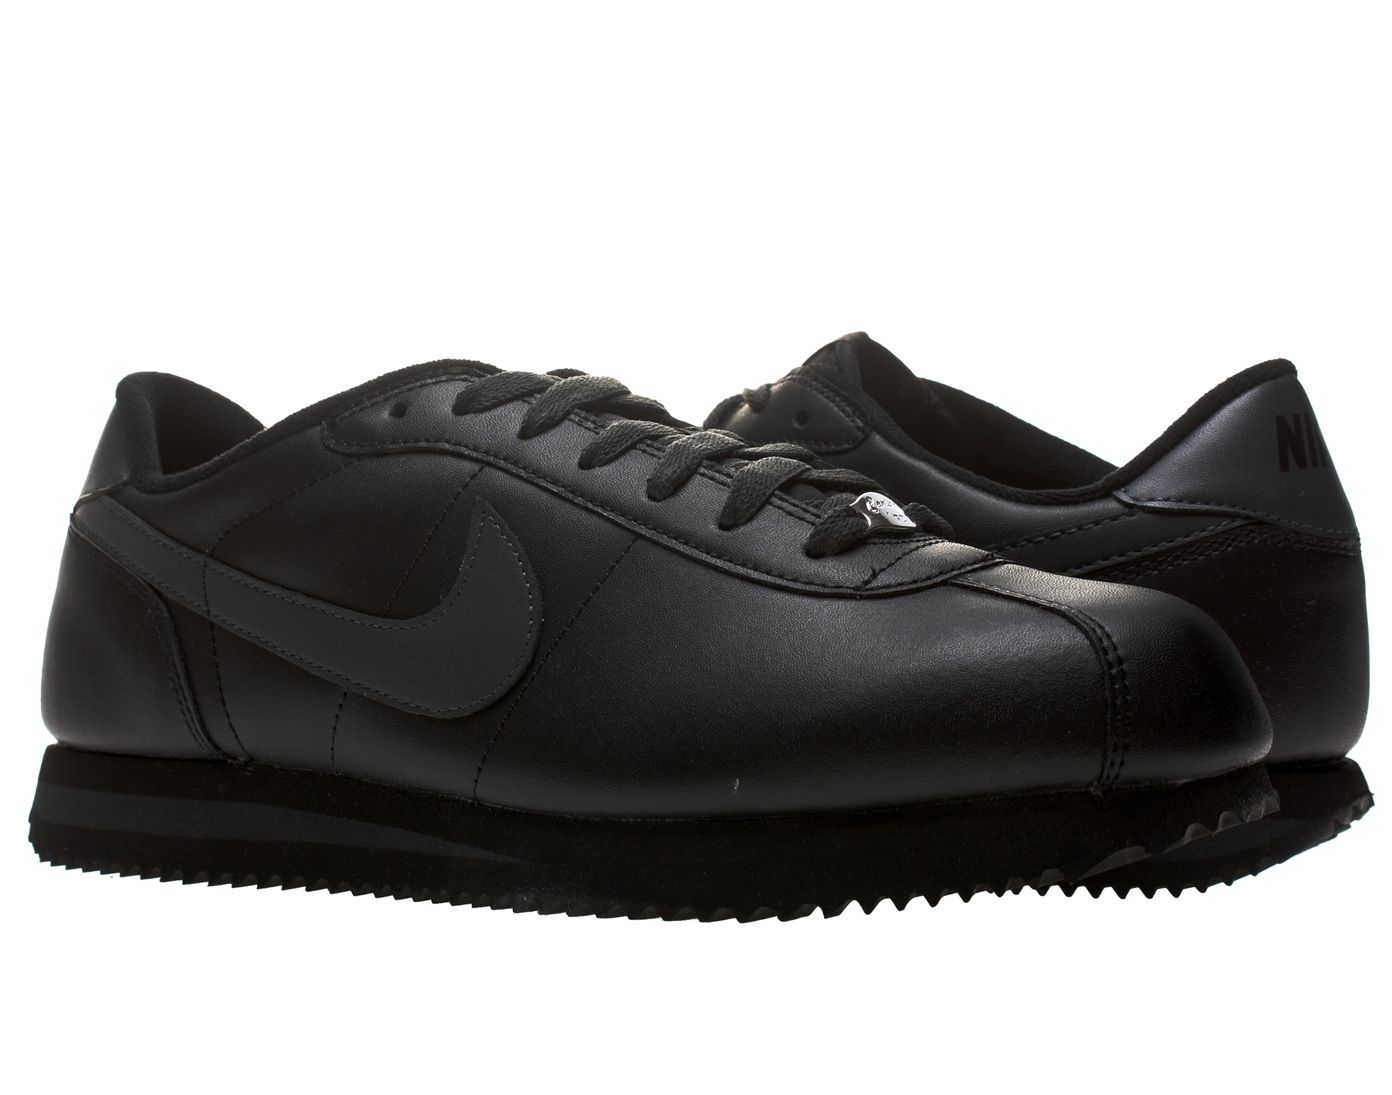 Black And Gray Nike Cortez